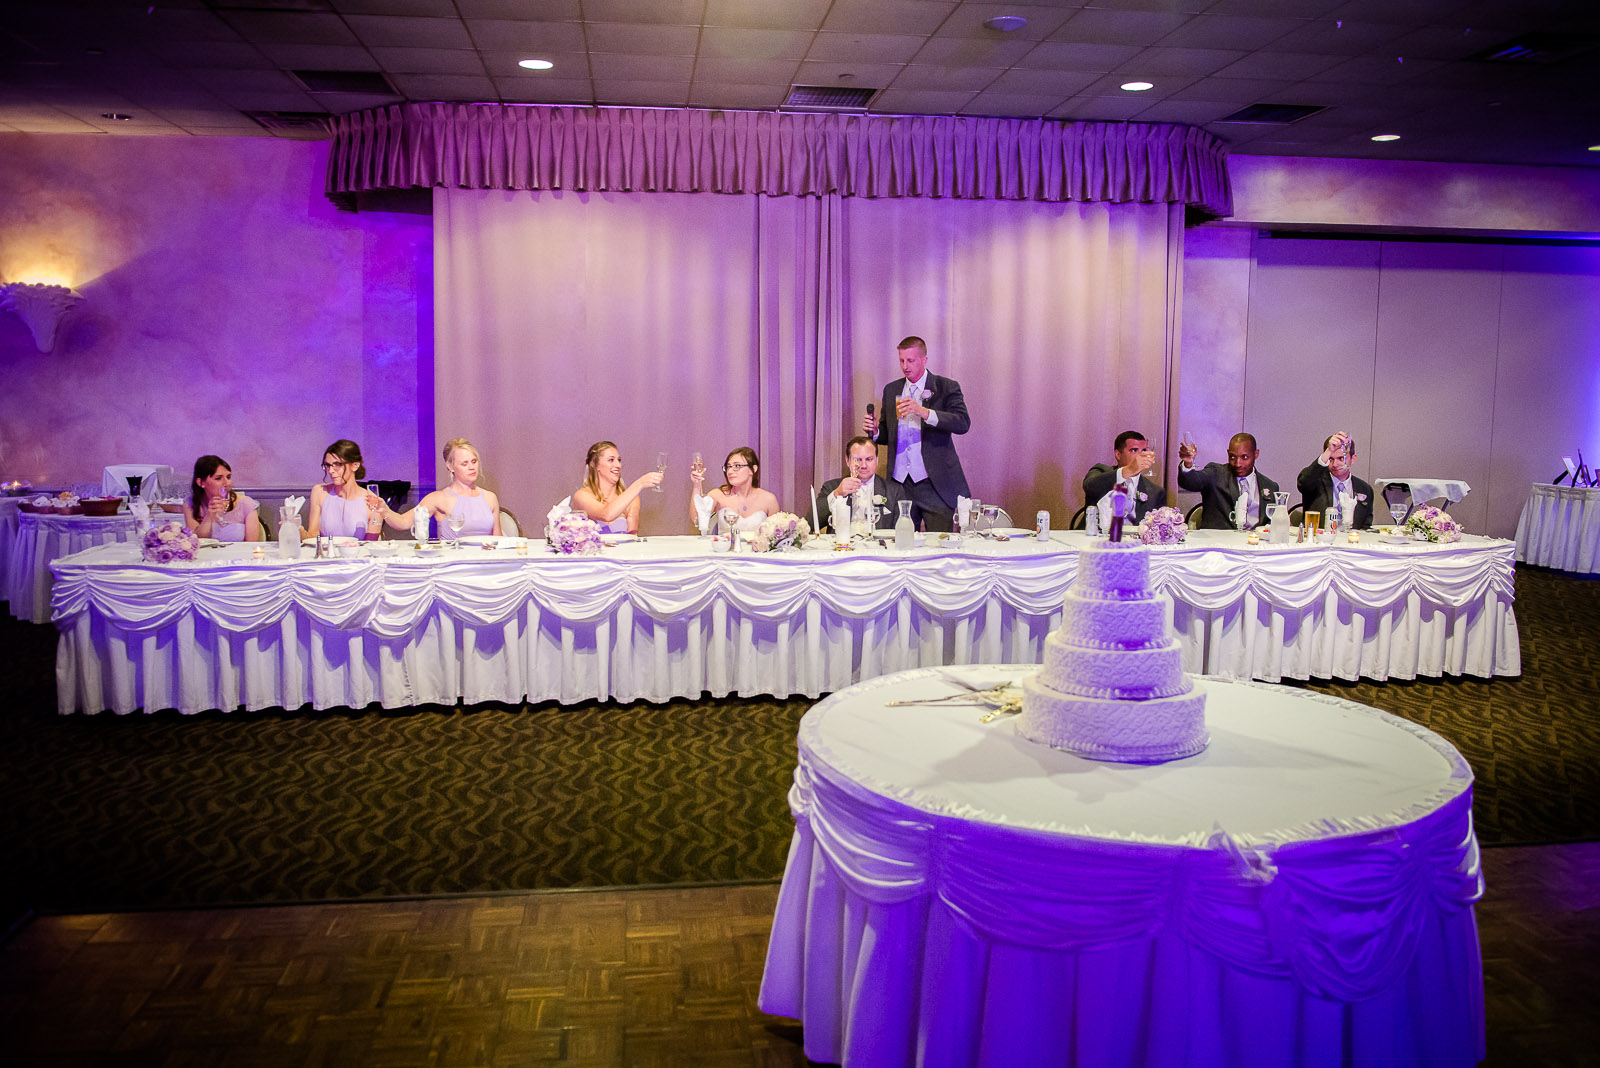 Eric_and_Christy_Photography_Blog_Julie_Adam_Wedding-53